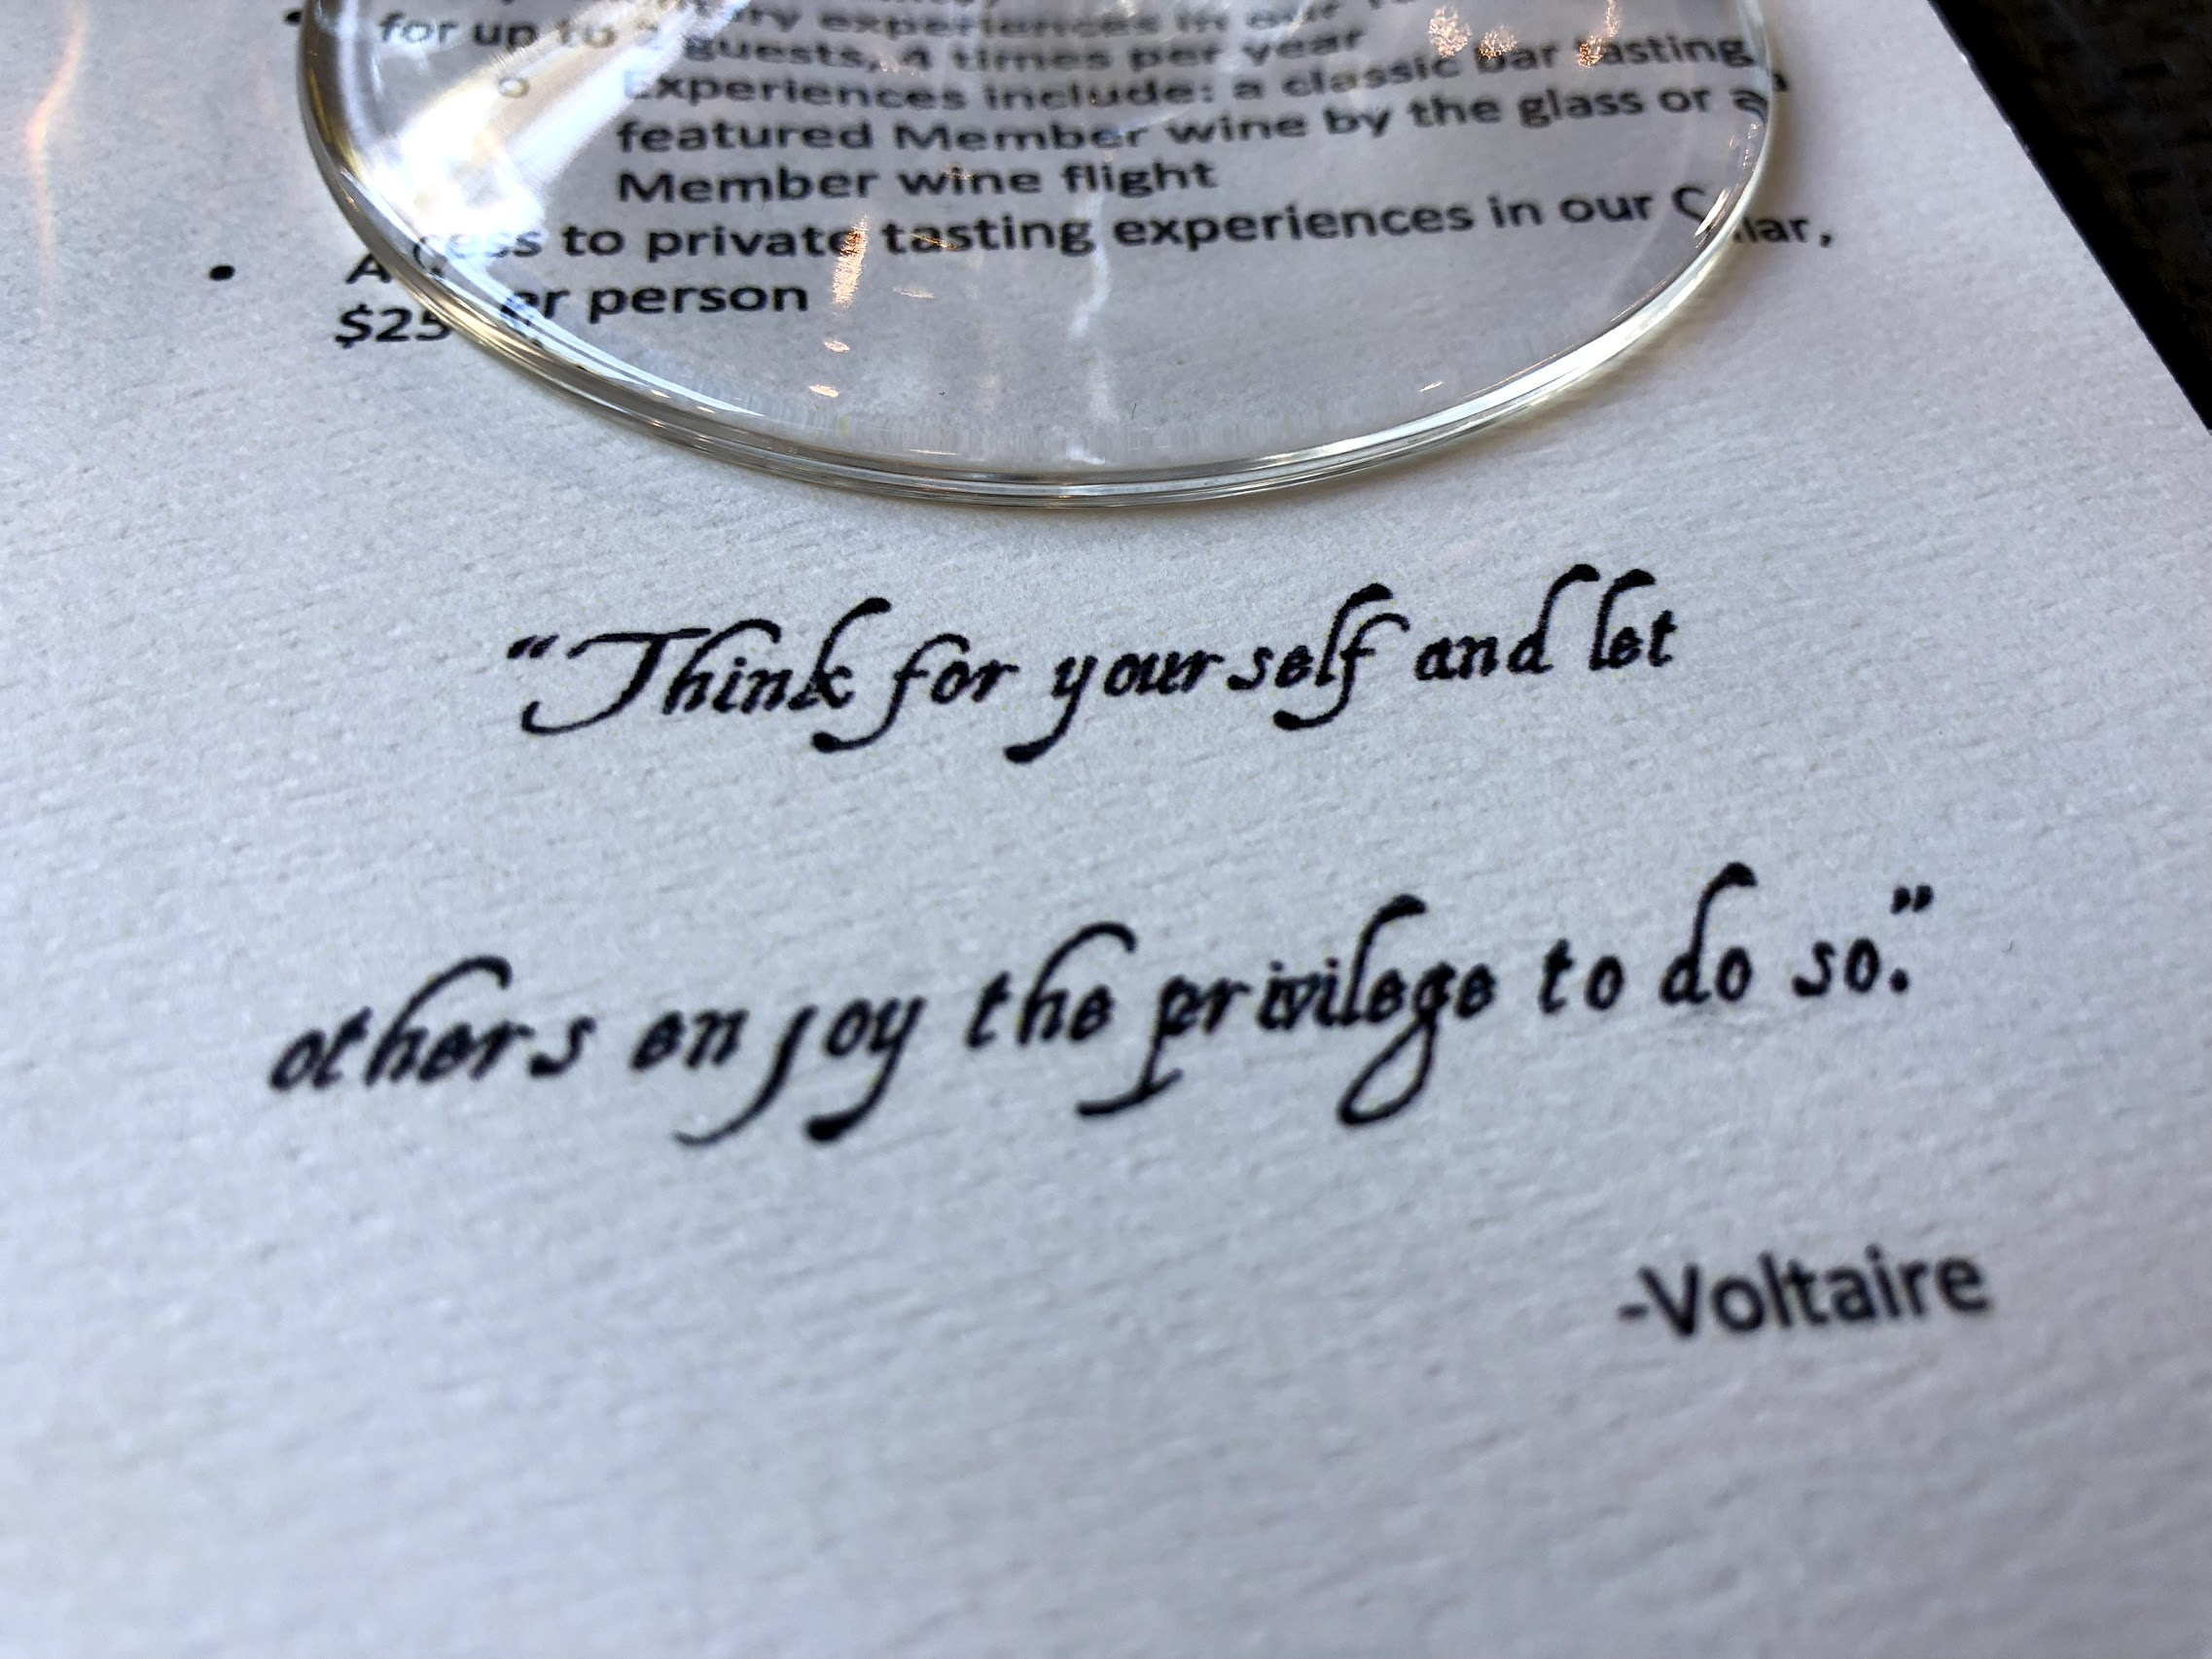 Voltaire and Wine